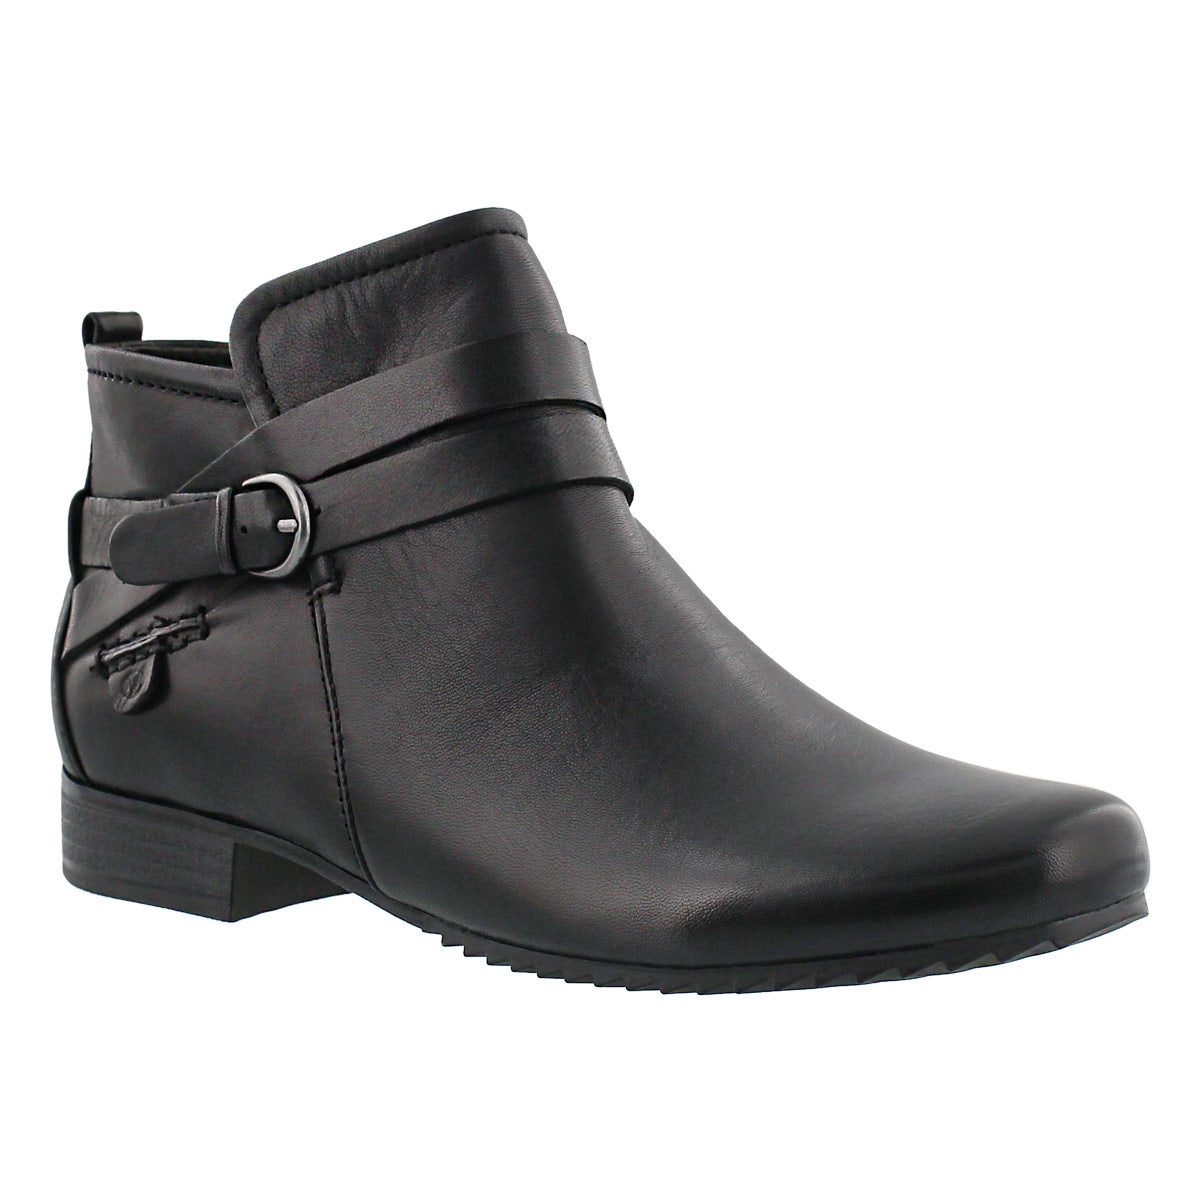 Women's SABRINA 03 black leather casual booties